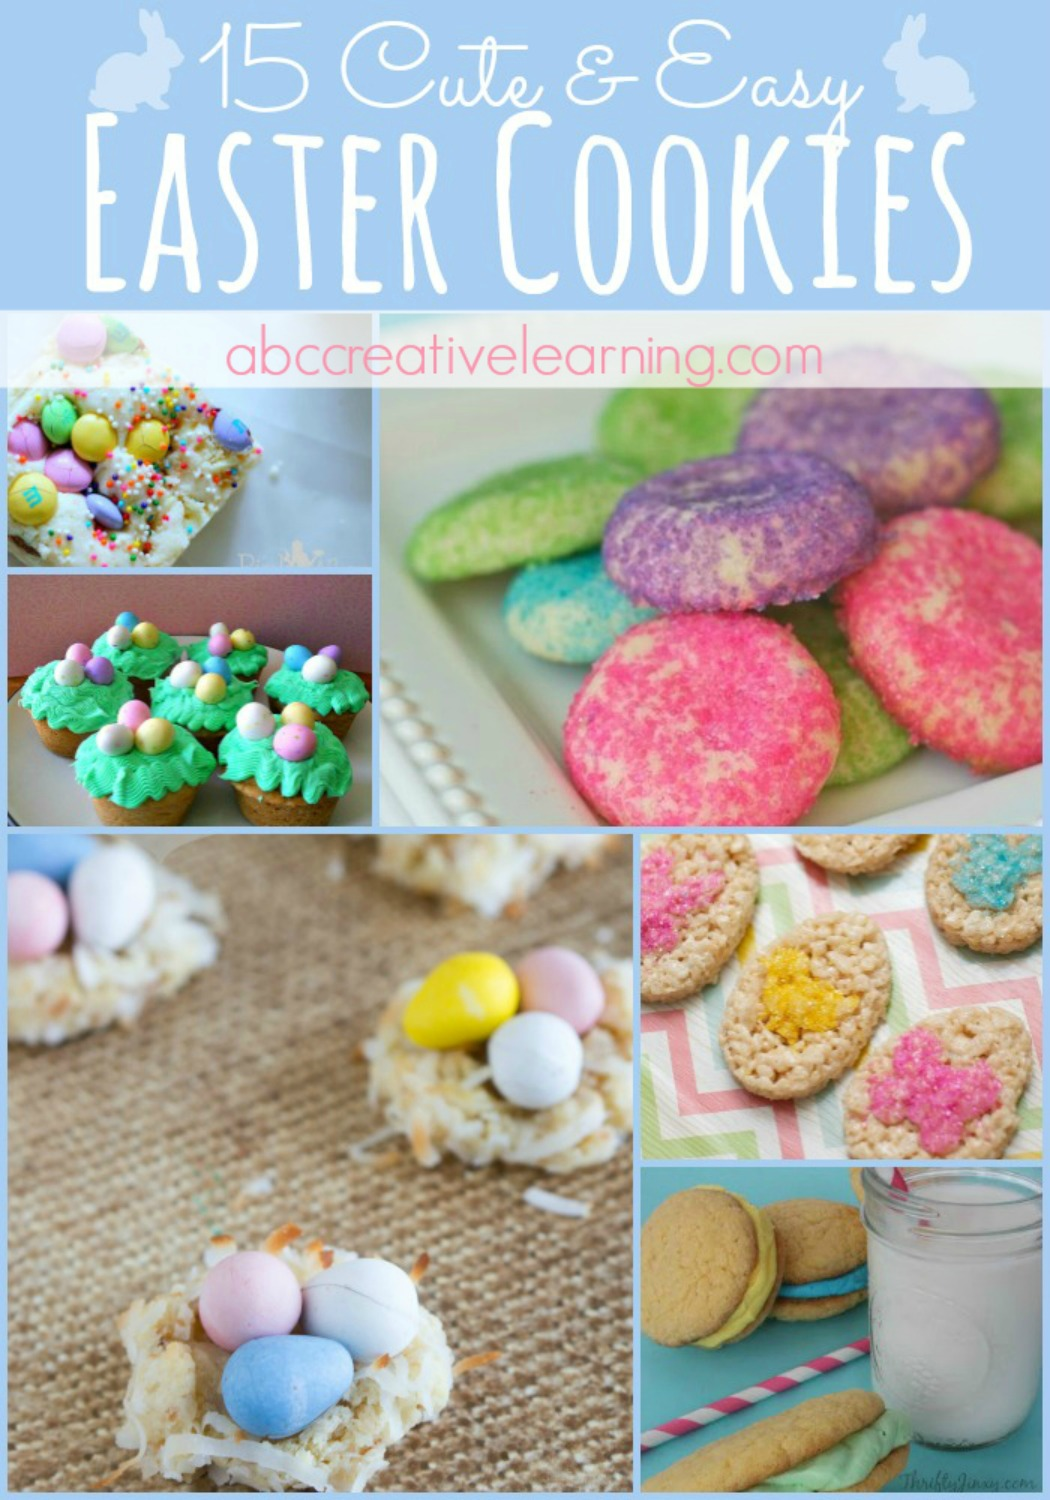 15 Cute and Easy Easter Cookies - abccreativelearning.com